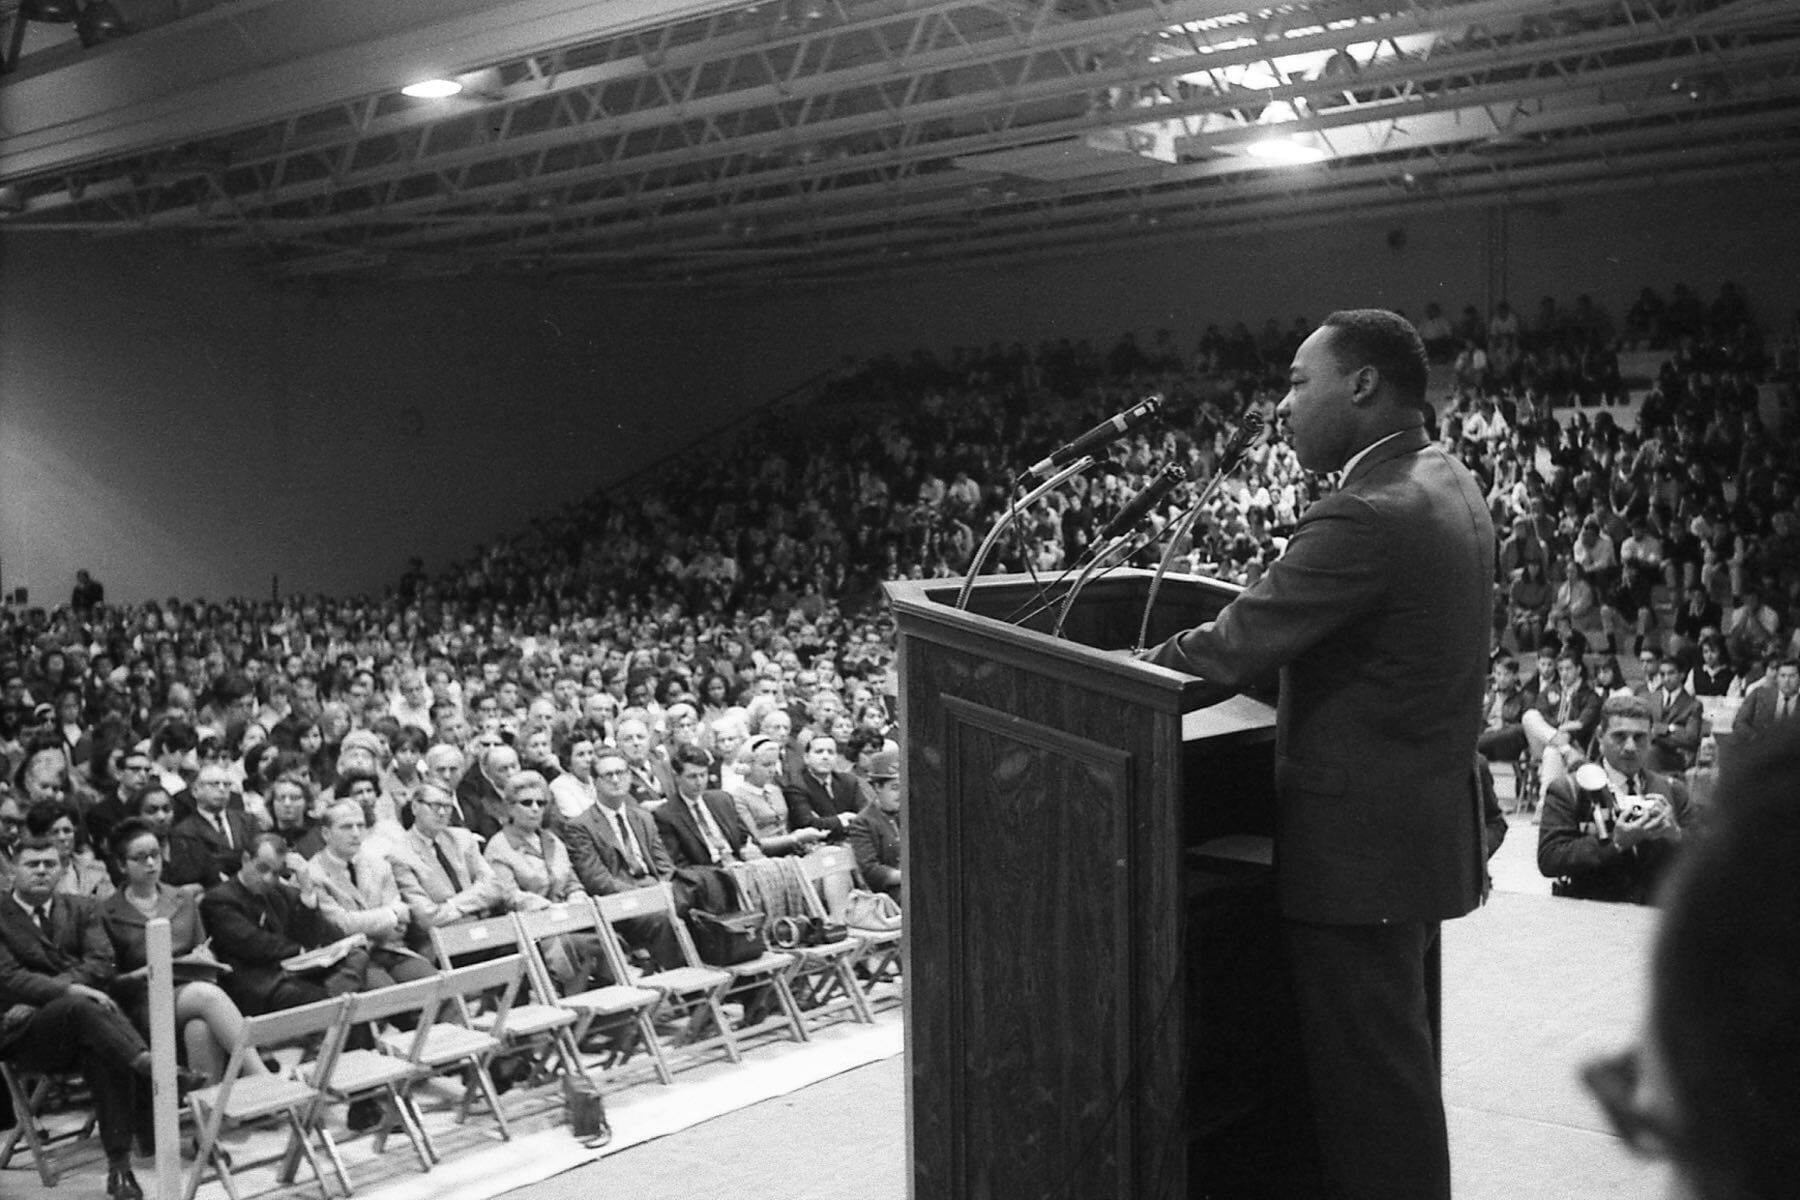 Martin Luther King Jr. speaking to a captive audience in Boylan Gymnasium